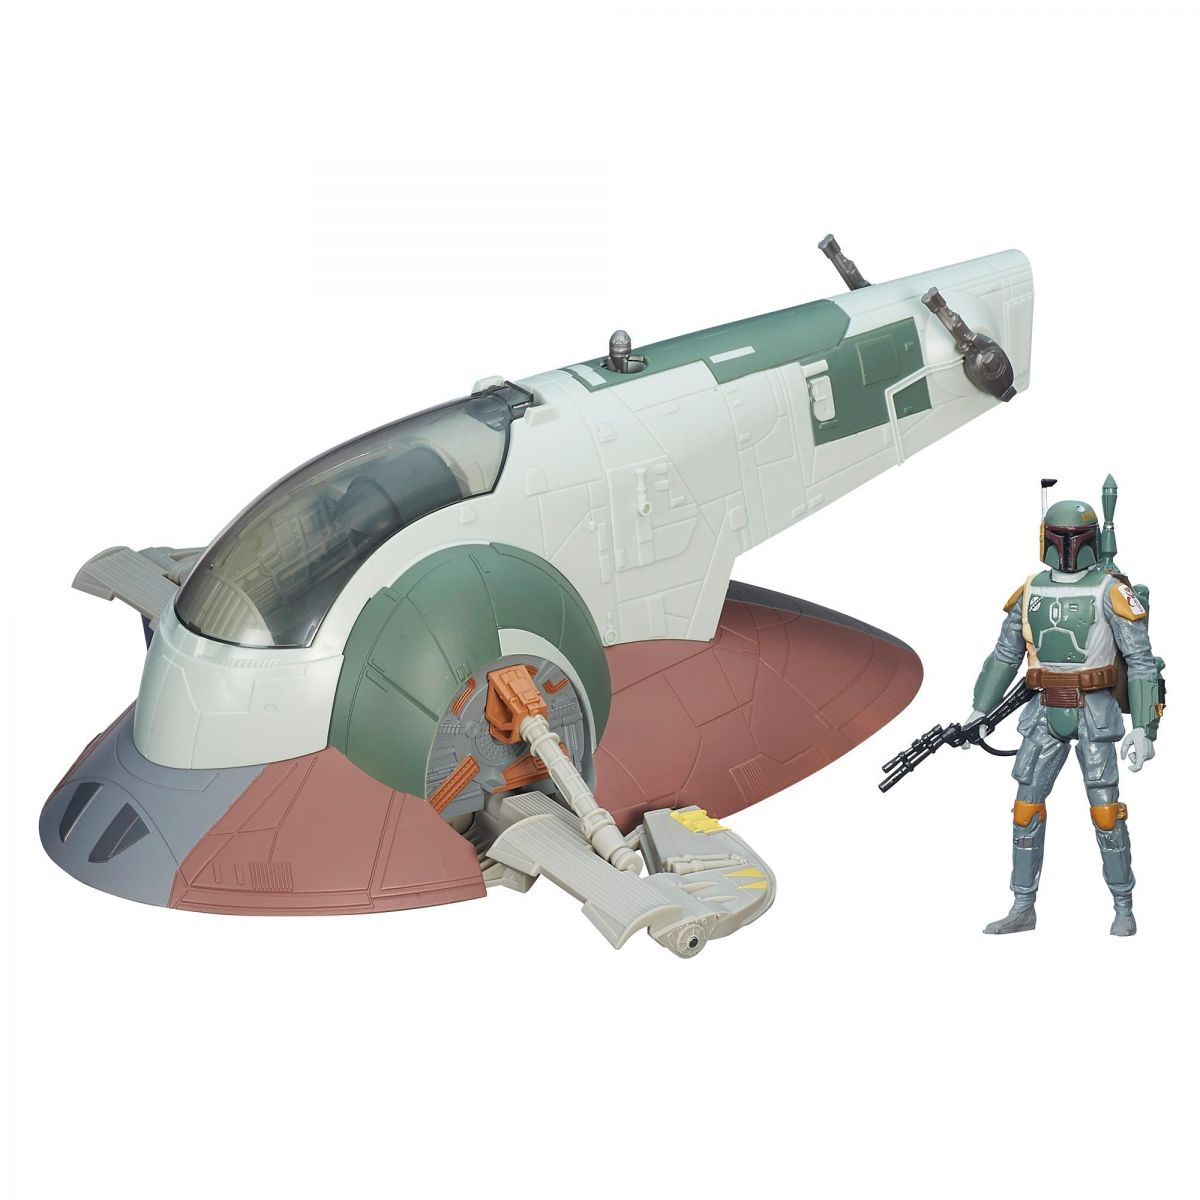 Star Wars The Force Awakens: Boba Fett Slave I - Hasbro